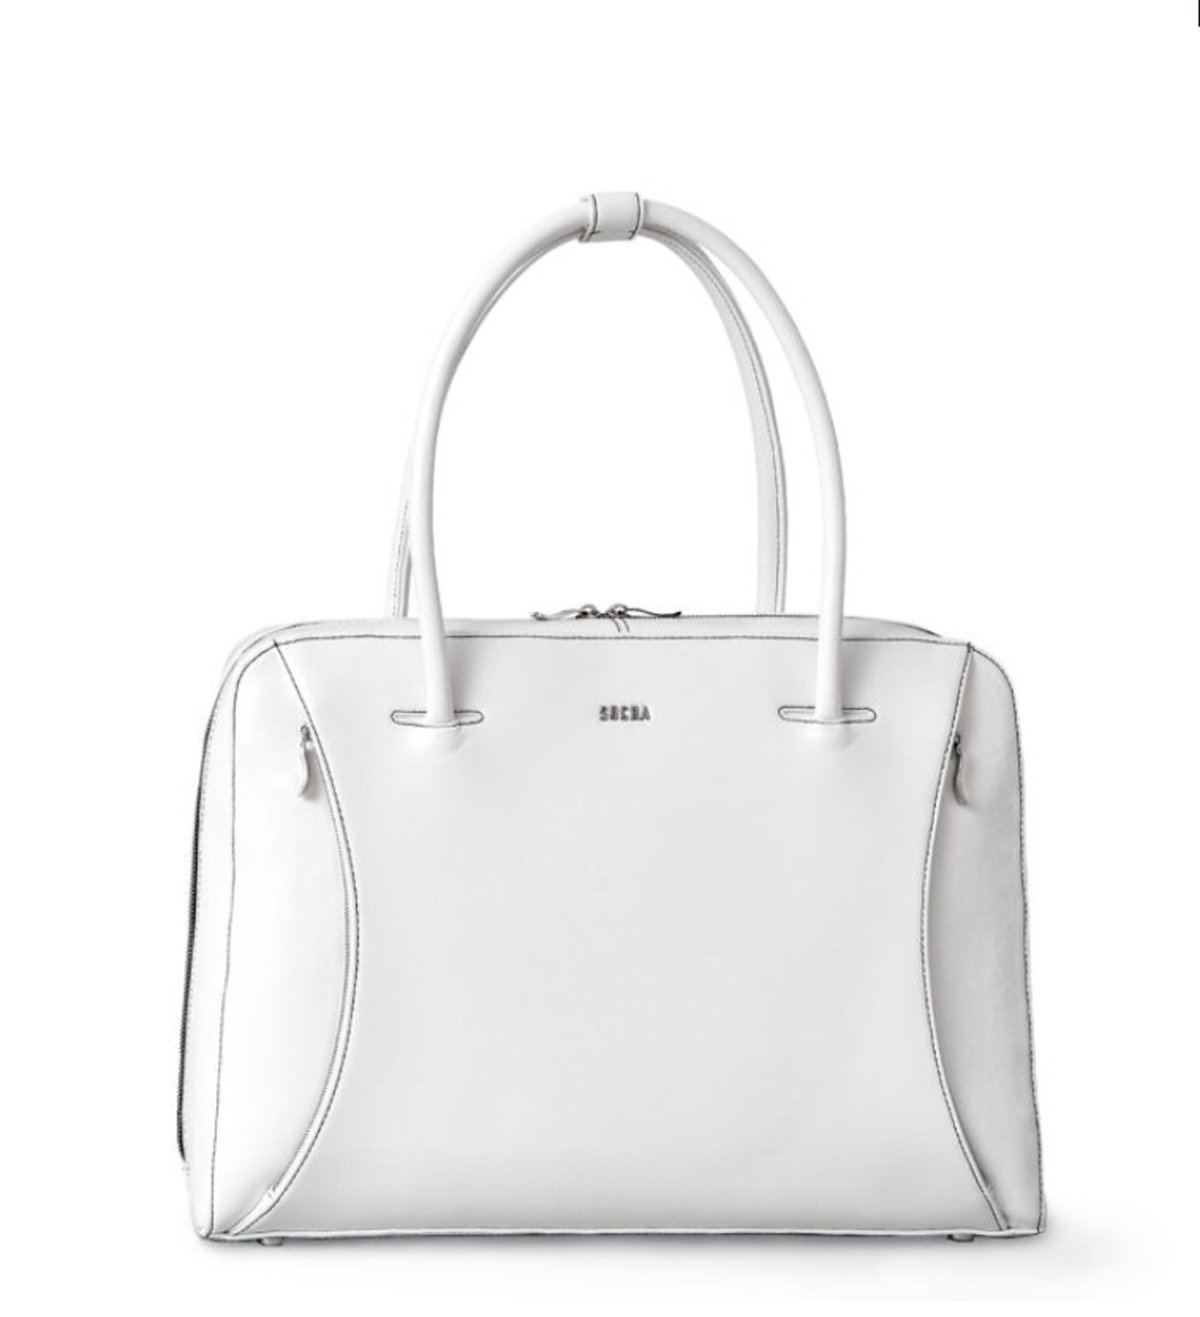 SOCHA Damen Businessbag Tasche So White Swan 14'-15, 6' Bowatex 6' Bowatex So White Swan 8239